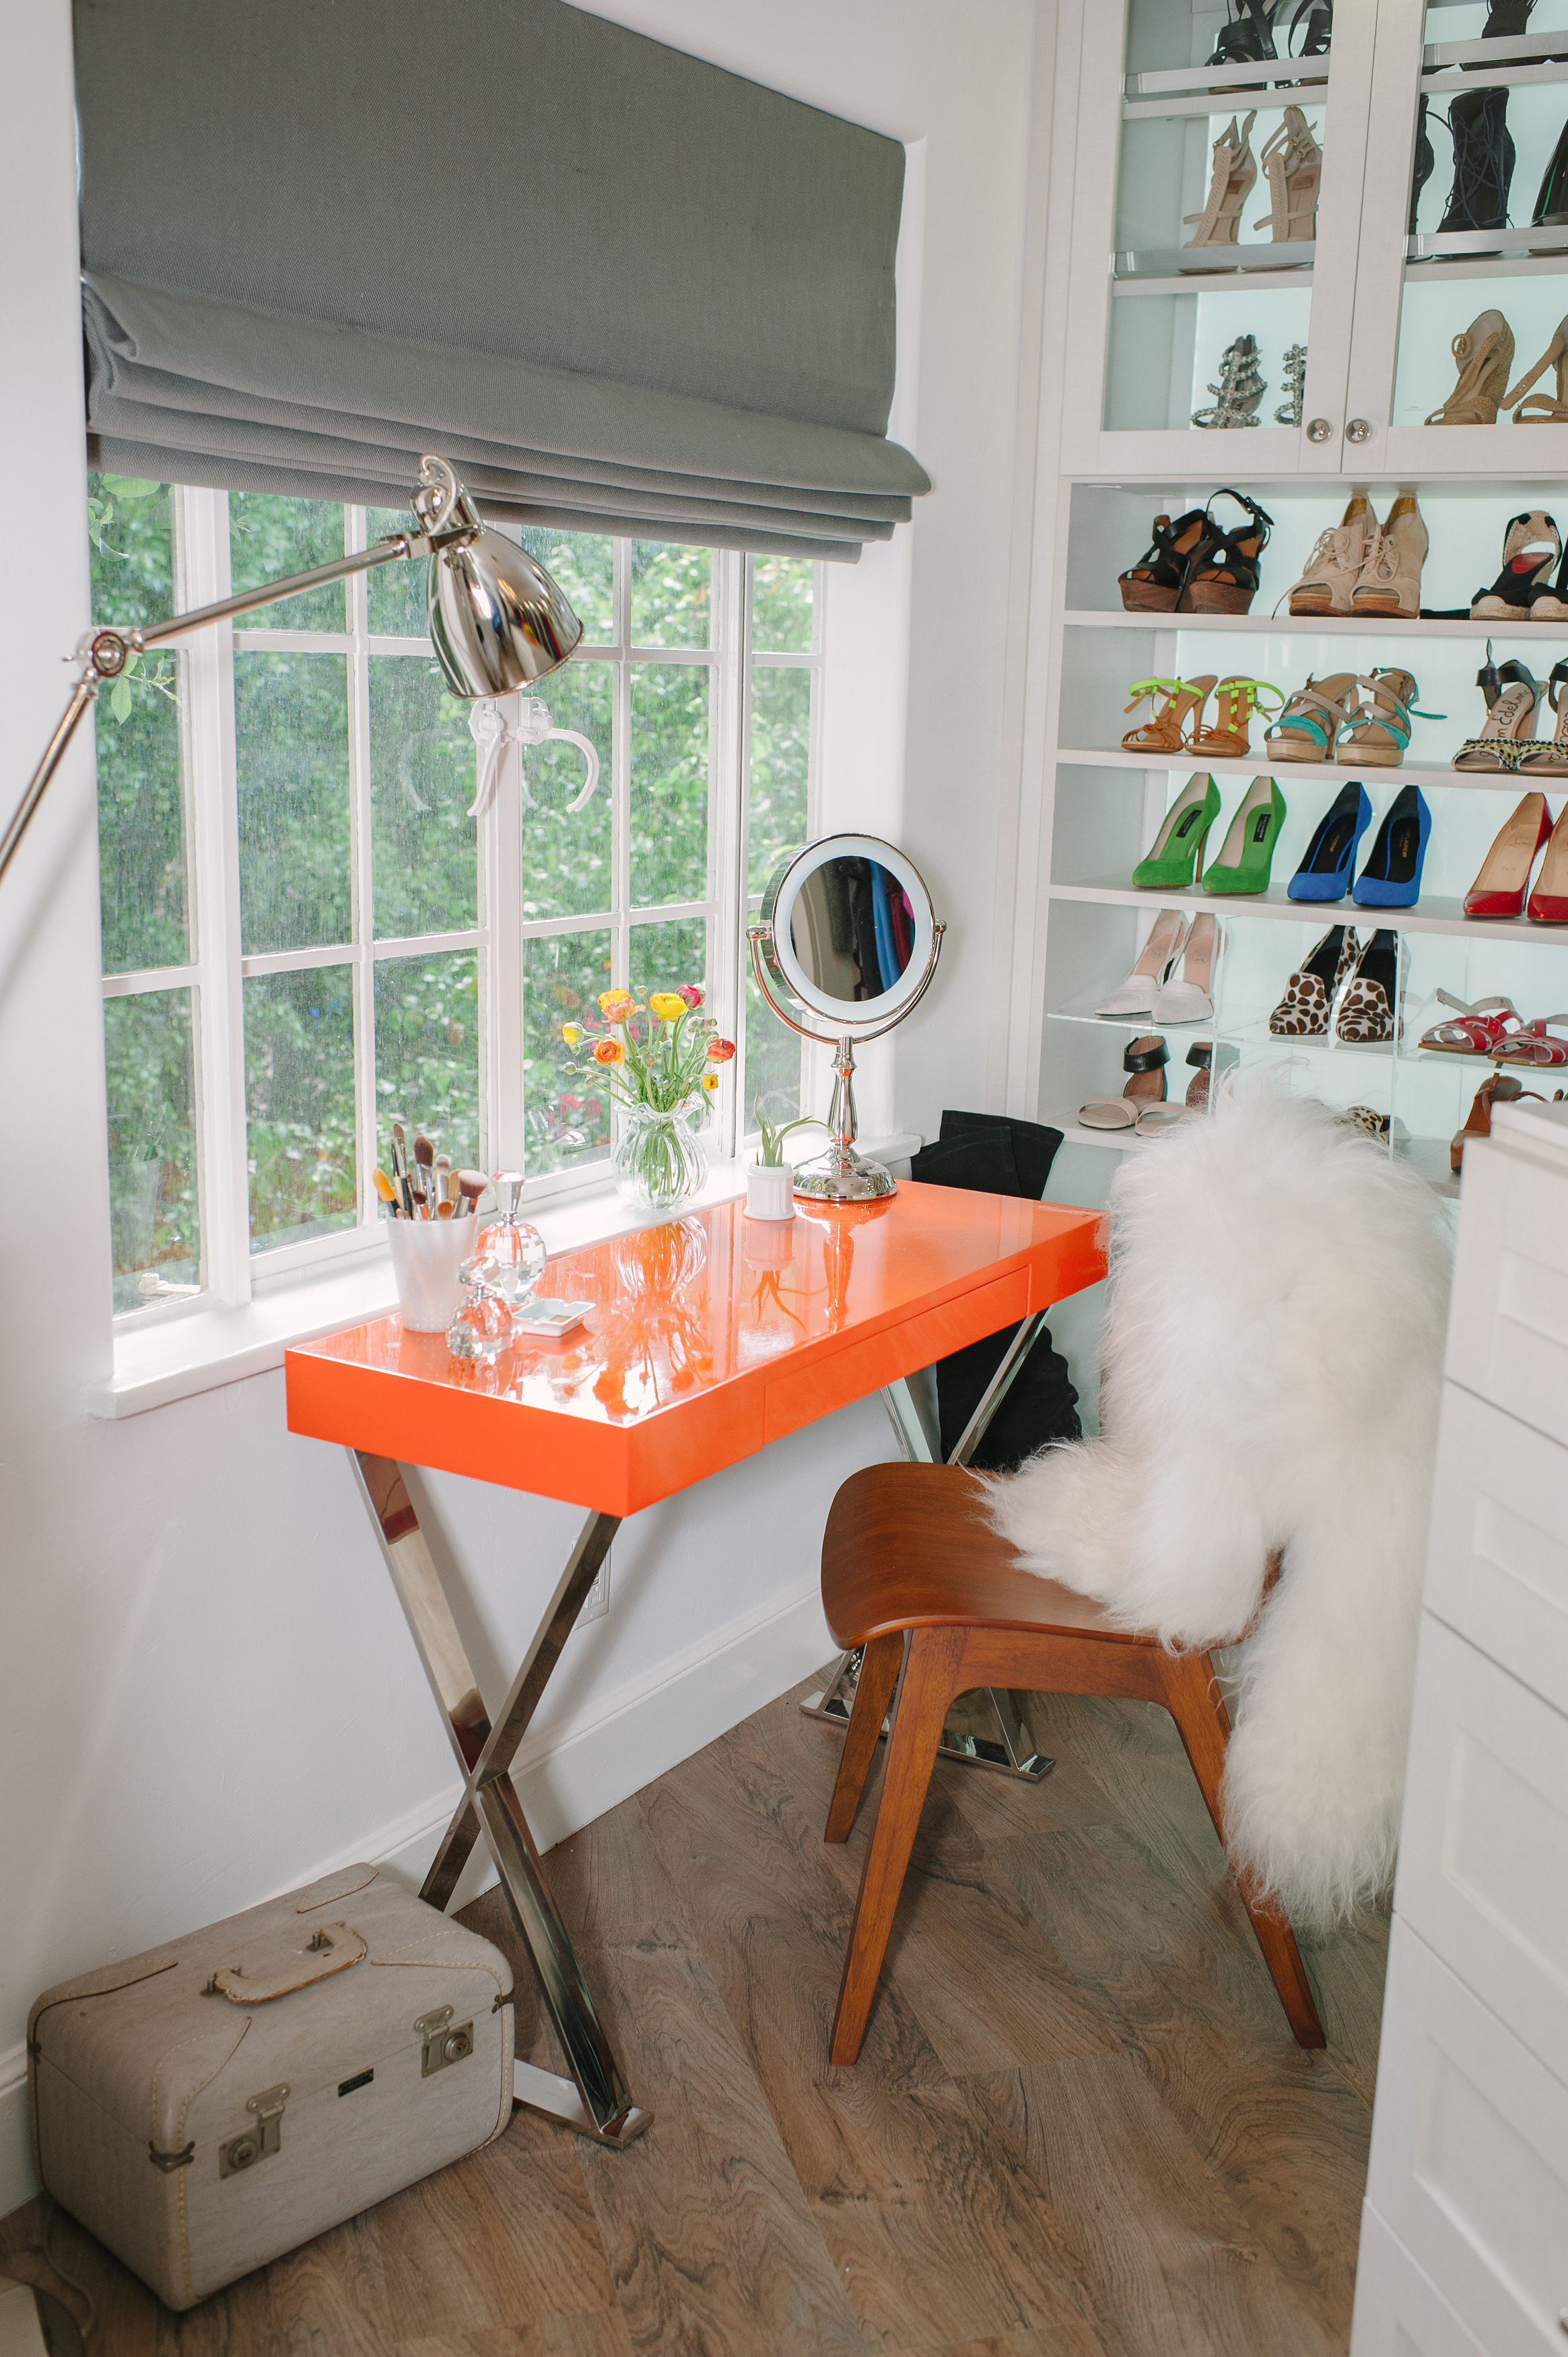 """Lewis placed a vanity near the window, so Thiessen can apply her makeup in natural light. She ordered the table from One King's Lane and had it lacquered in the same signature shade as the Hermes boxes in Thiessen's closet. """"Tiffani was drawn to that color, it was absolutely fashion-inspired,"""" says Lewis."""